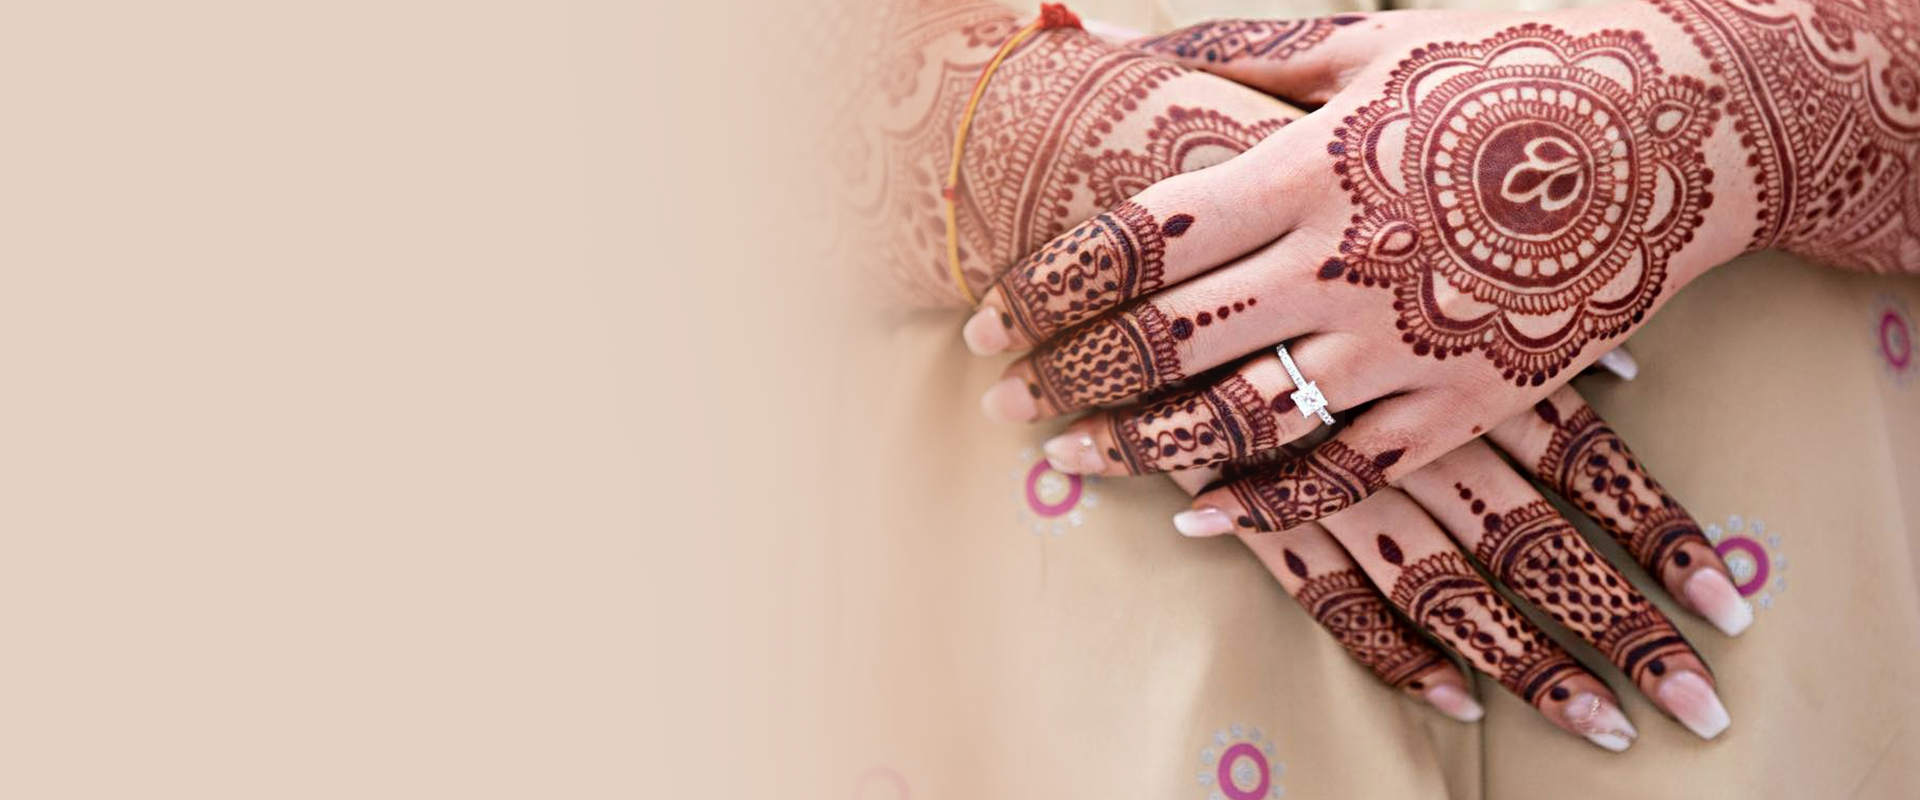 mehndi-on-hands-banner